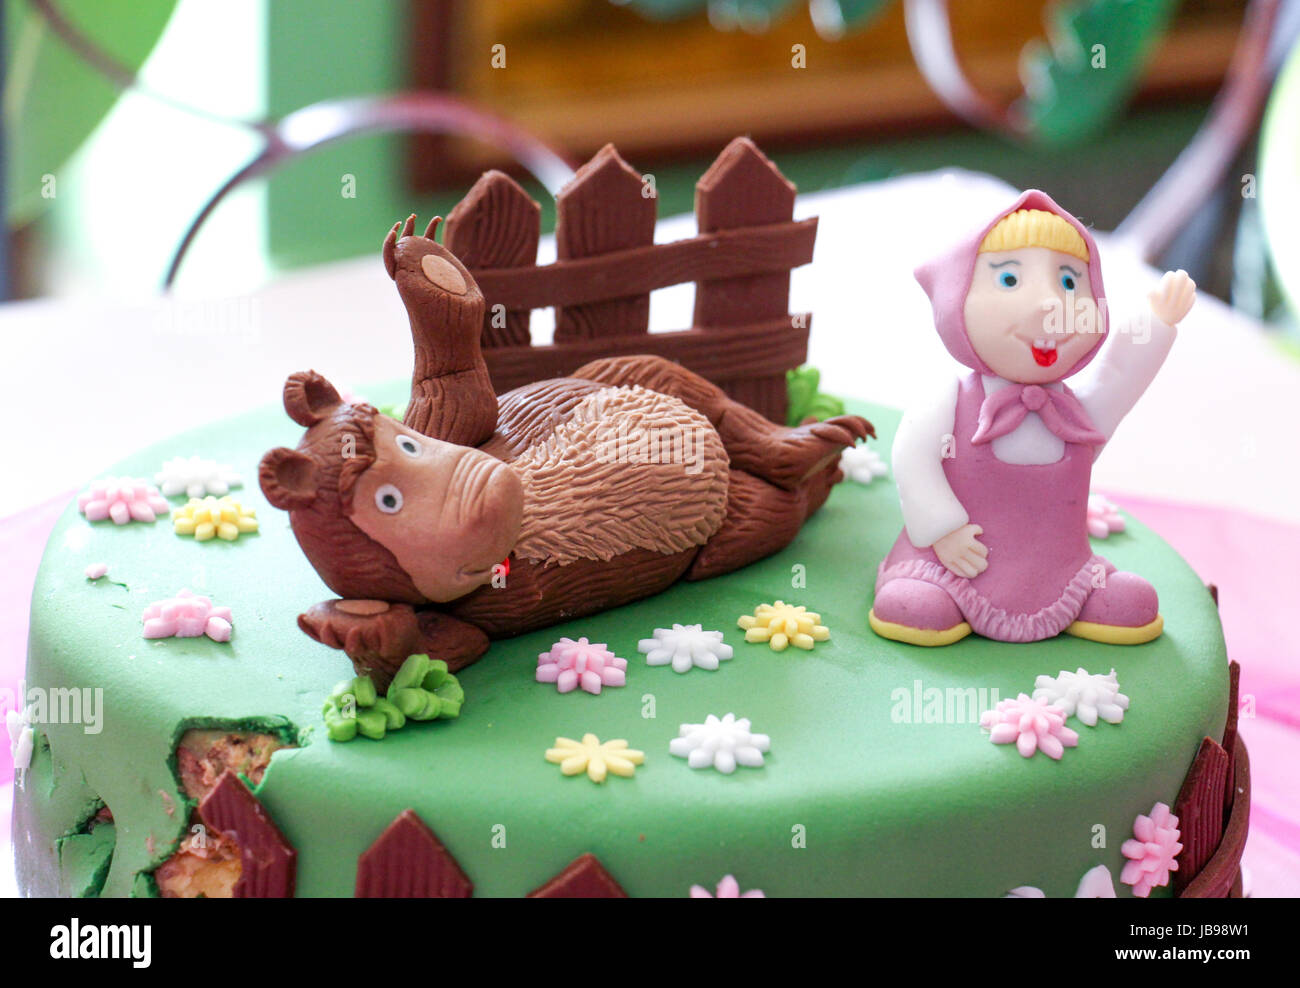 Birthday Cake With Sweet Teddy Bear Funny Homemade Image Of A